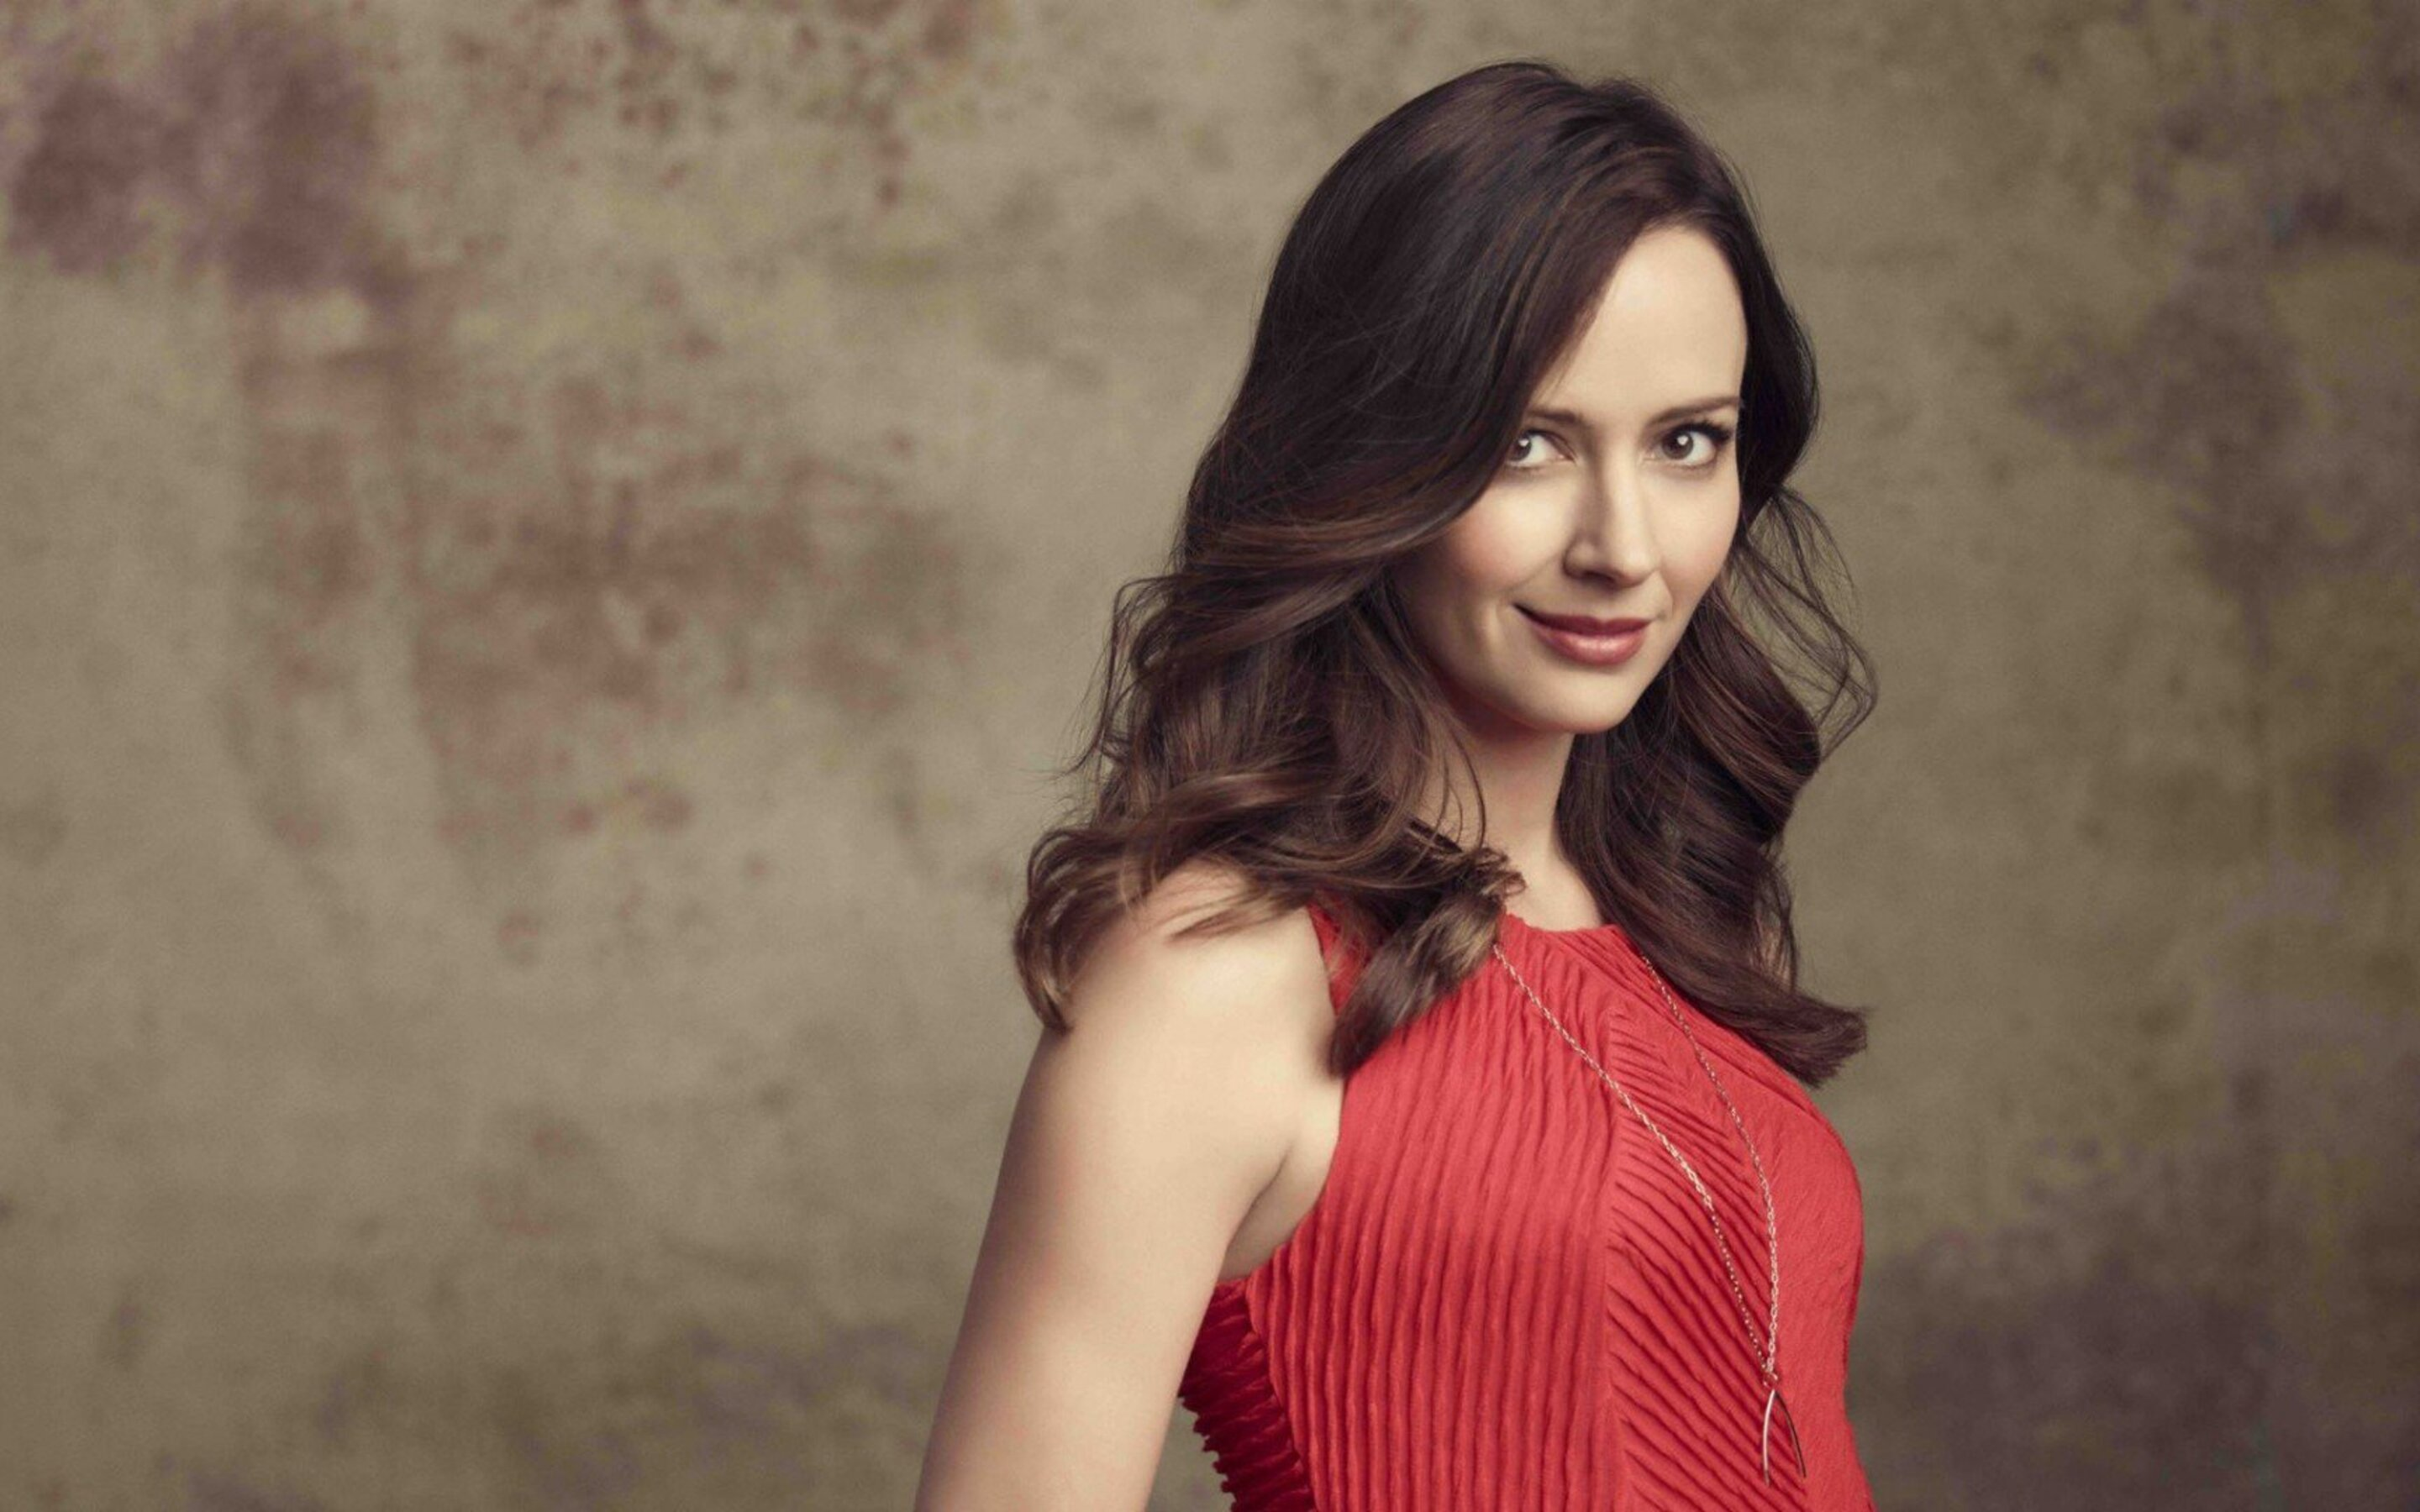 2880x1800 amy acker macbook pro retina hd 4k wallpapers, images